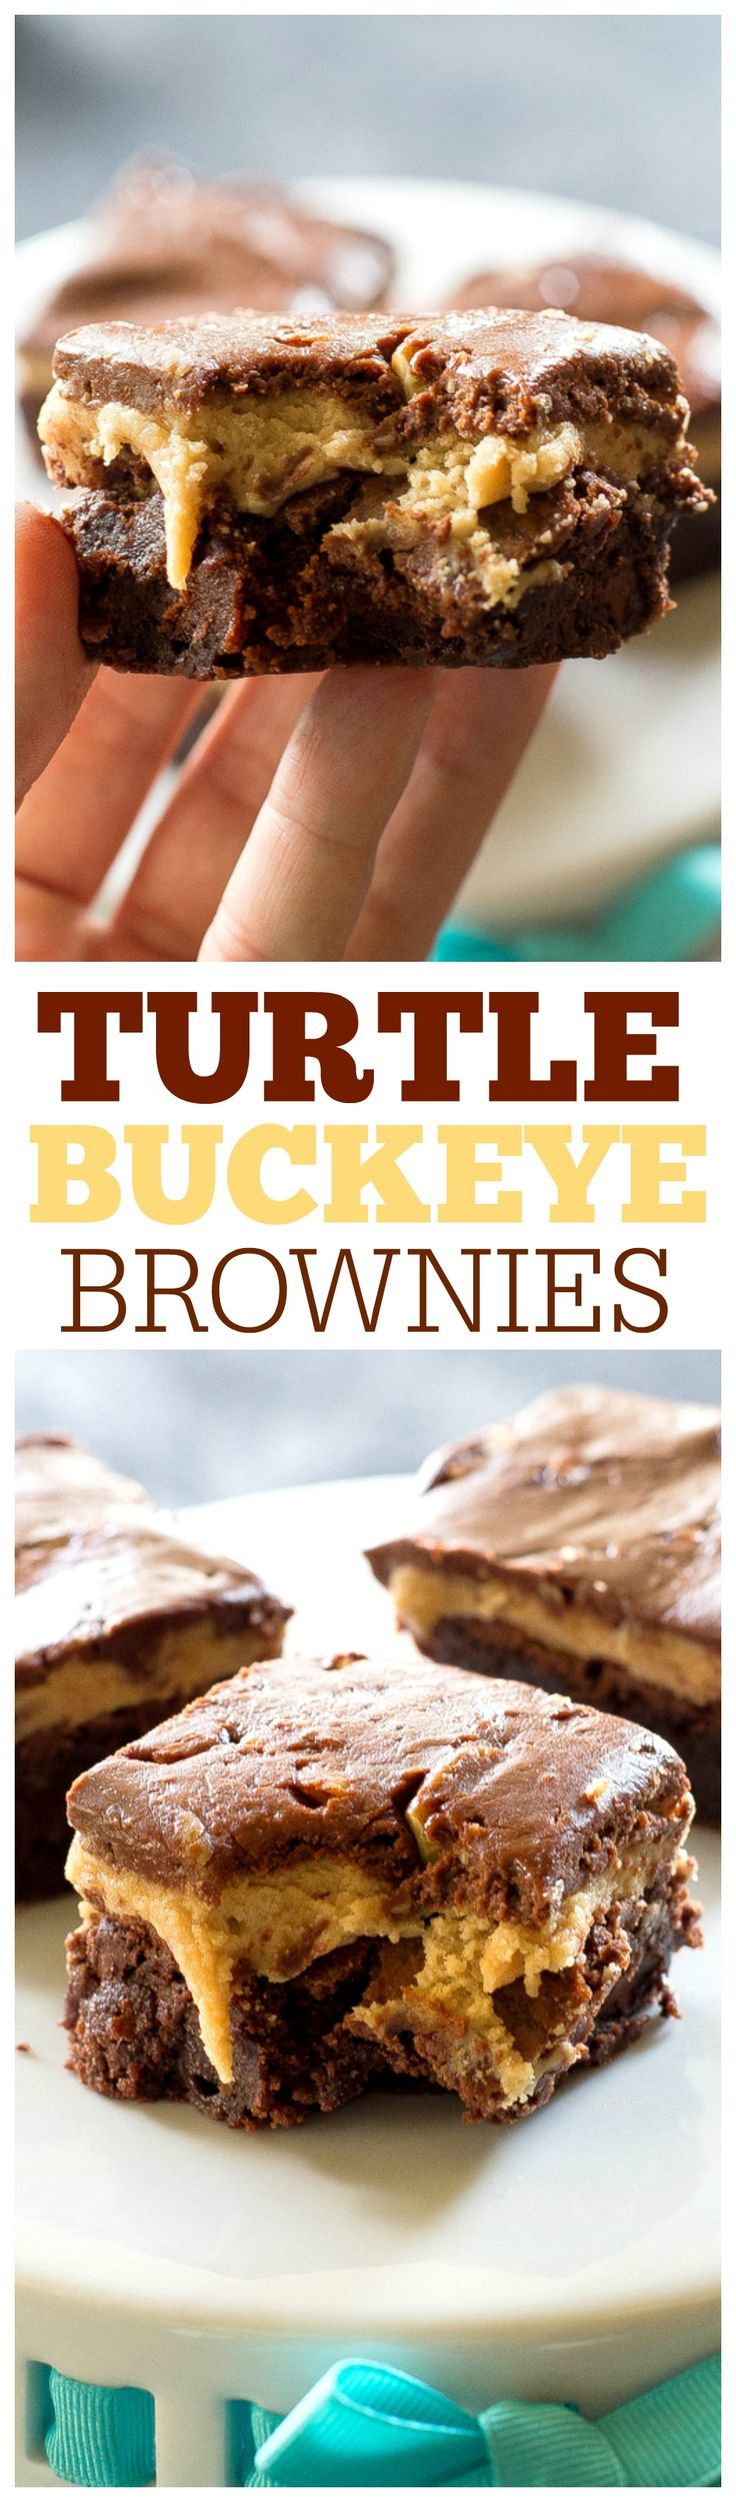 Turtle Buckeye Brownies - rich chocolate brownies, a peanut butter truffle layer and topped with a caramel chocolate pecan layer. The ultimate decadent dessert. the-girl-who-ate-everything.com